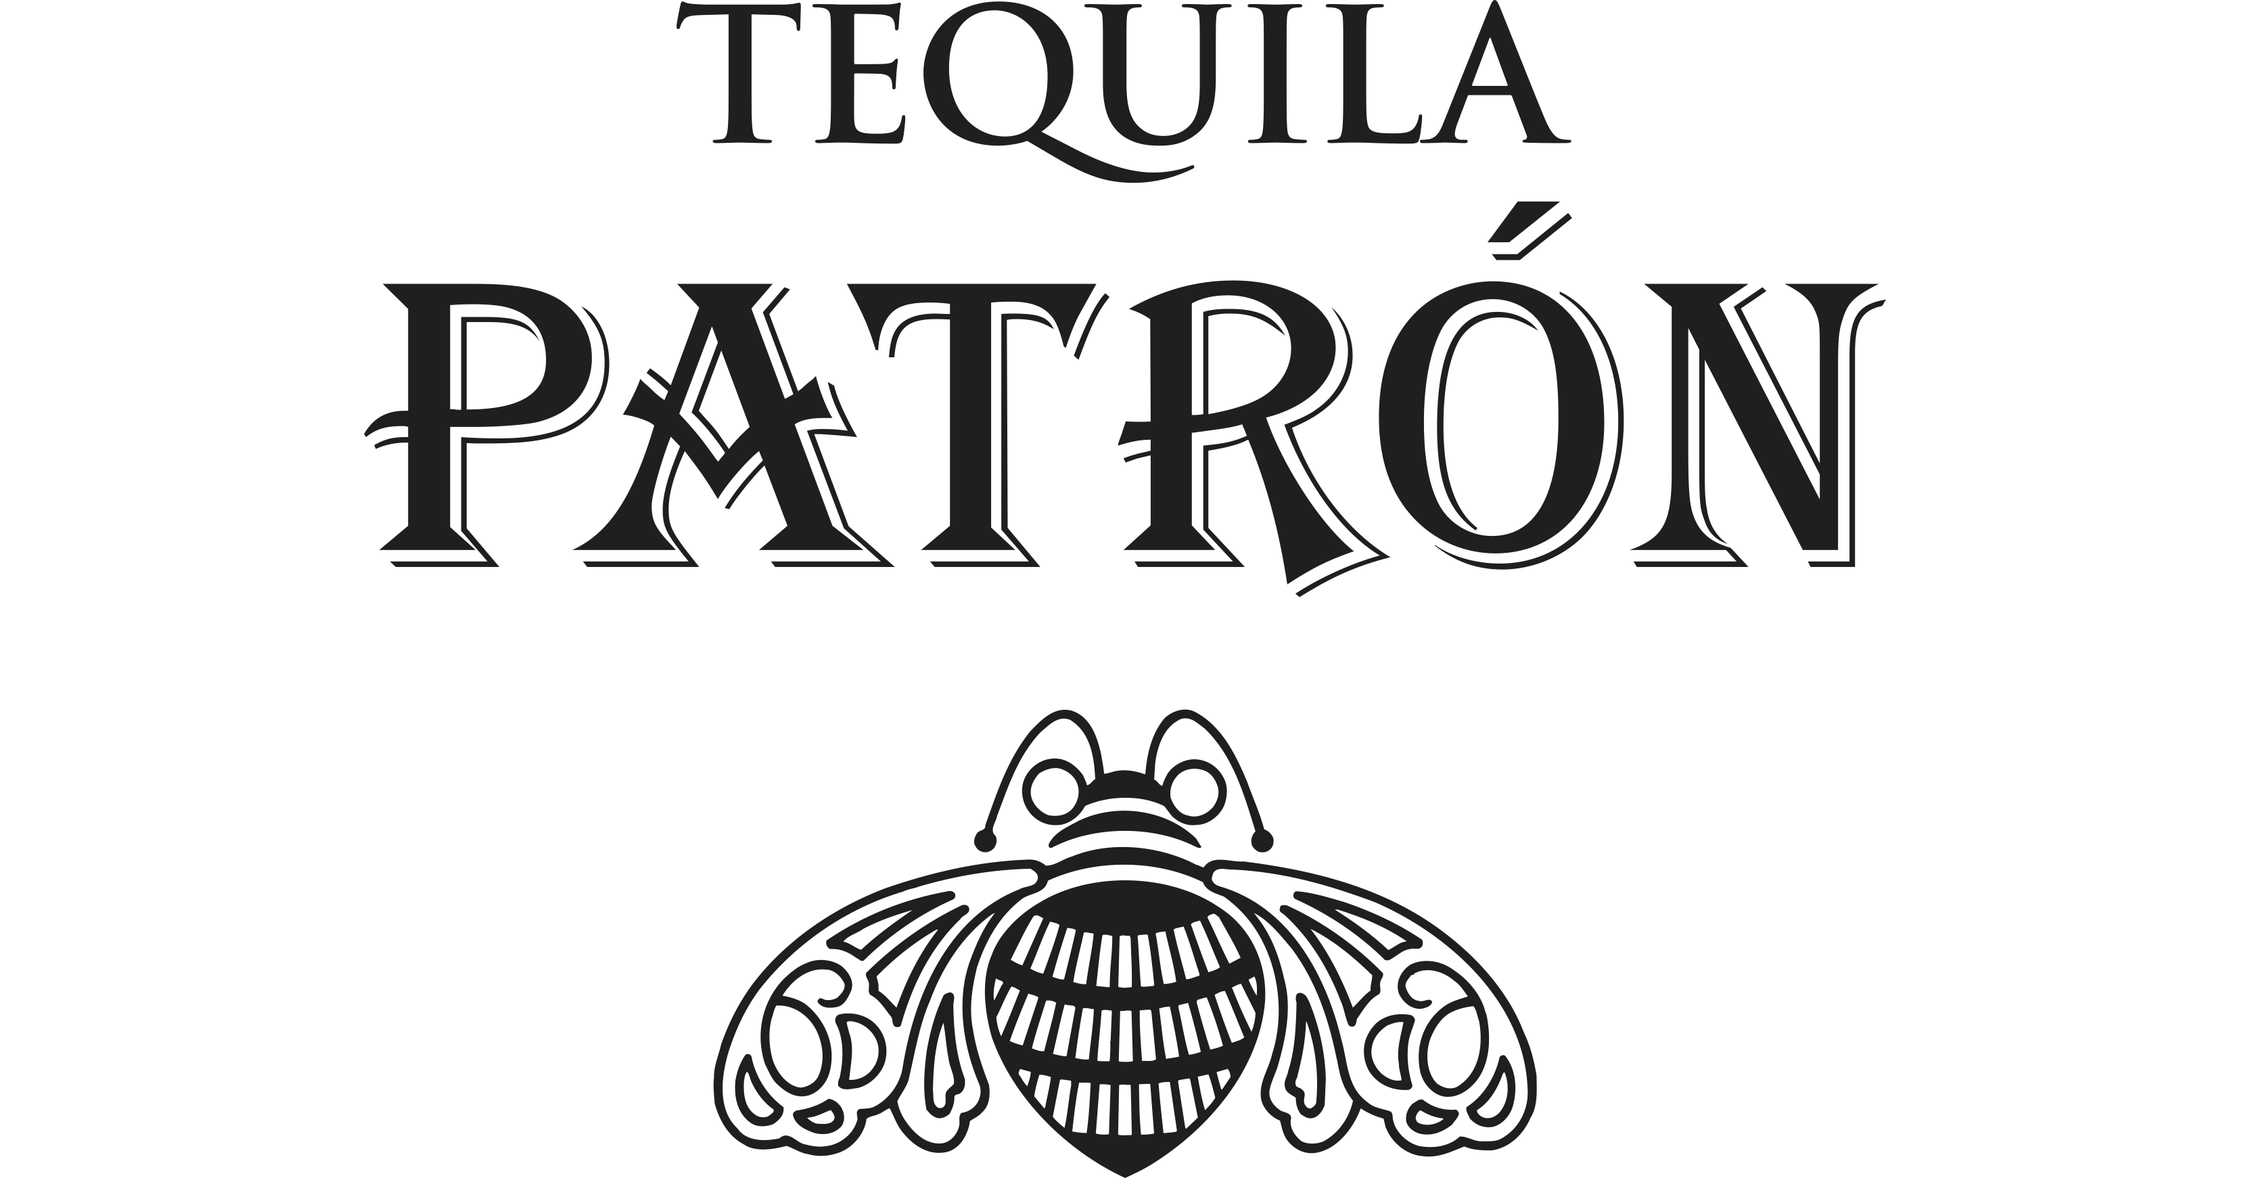 patr u00f3n tequila and acclaimed filmmaker guillermo del toro